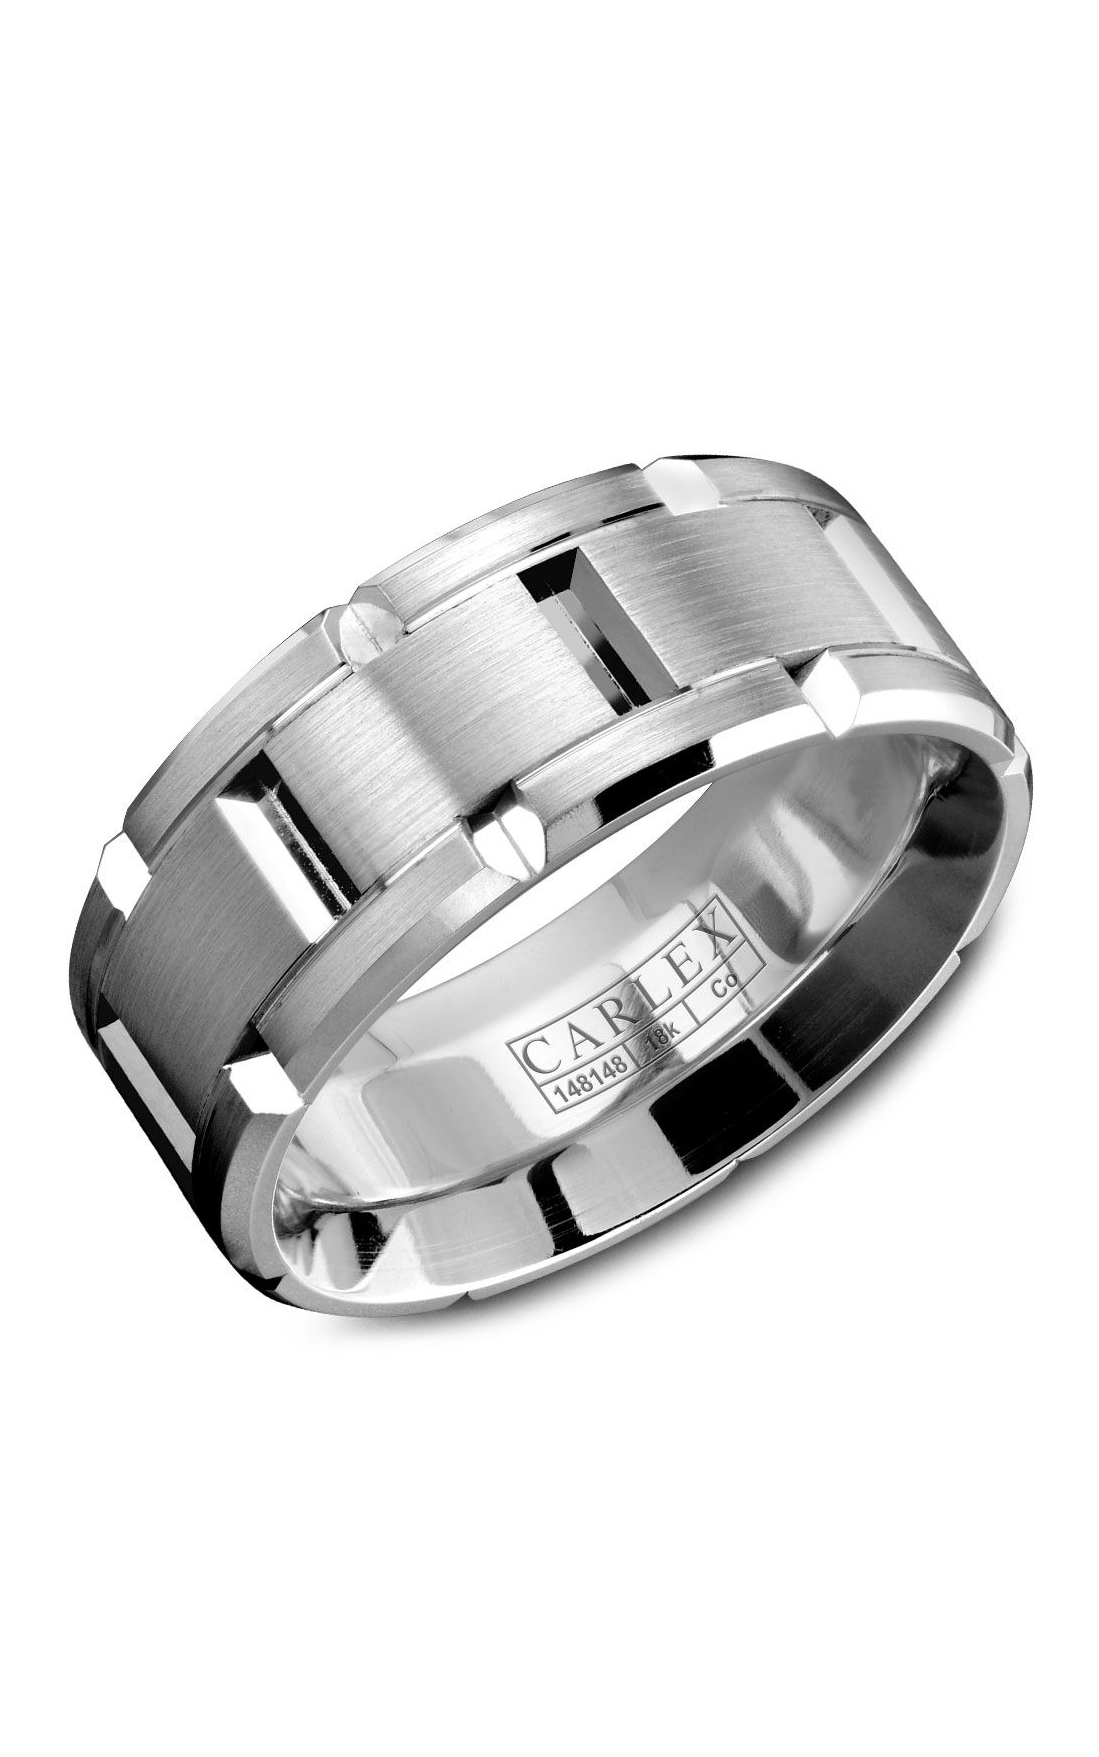 Carlex Sport Men's Wedding Band WB-9123WC product image